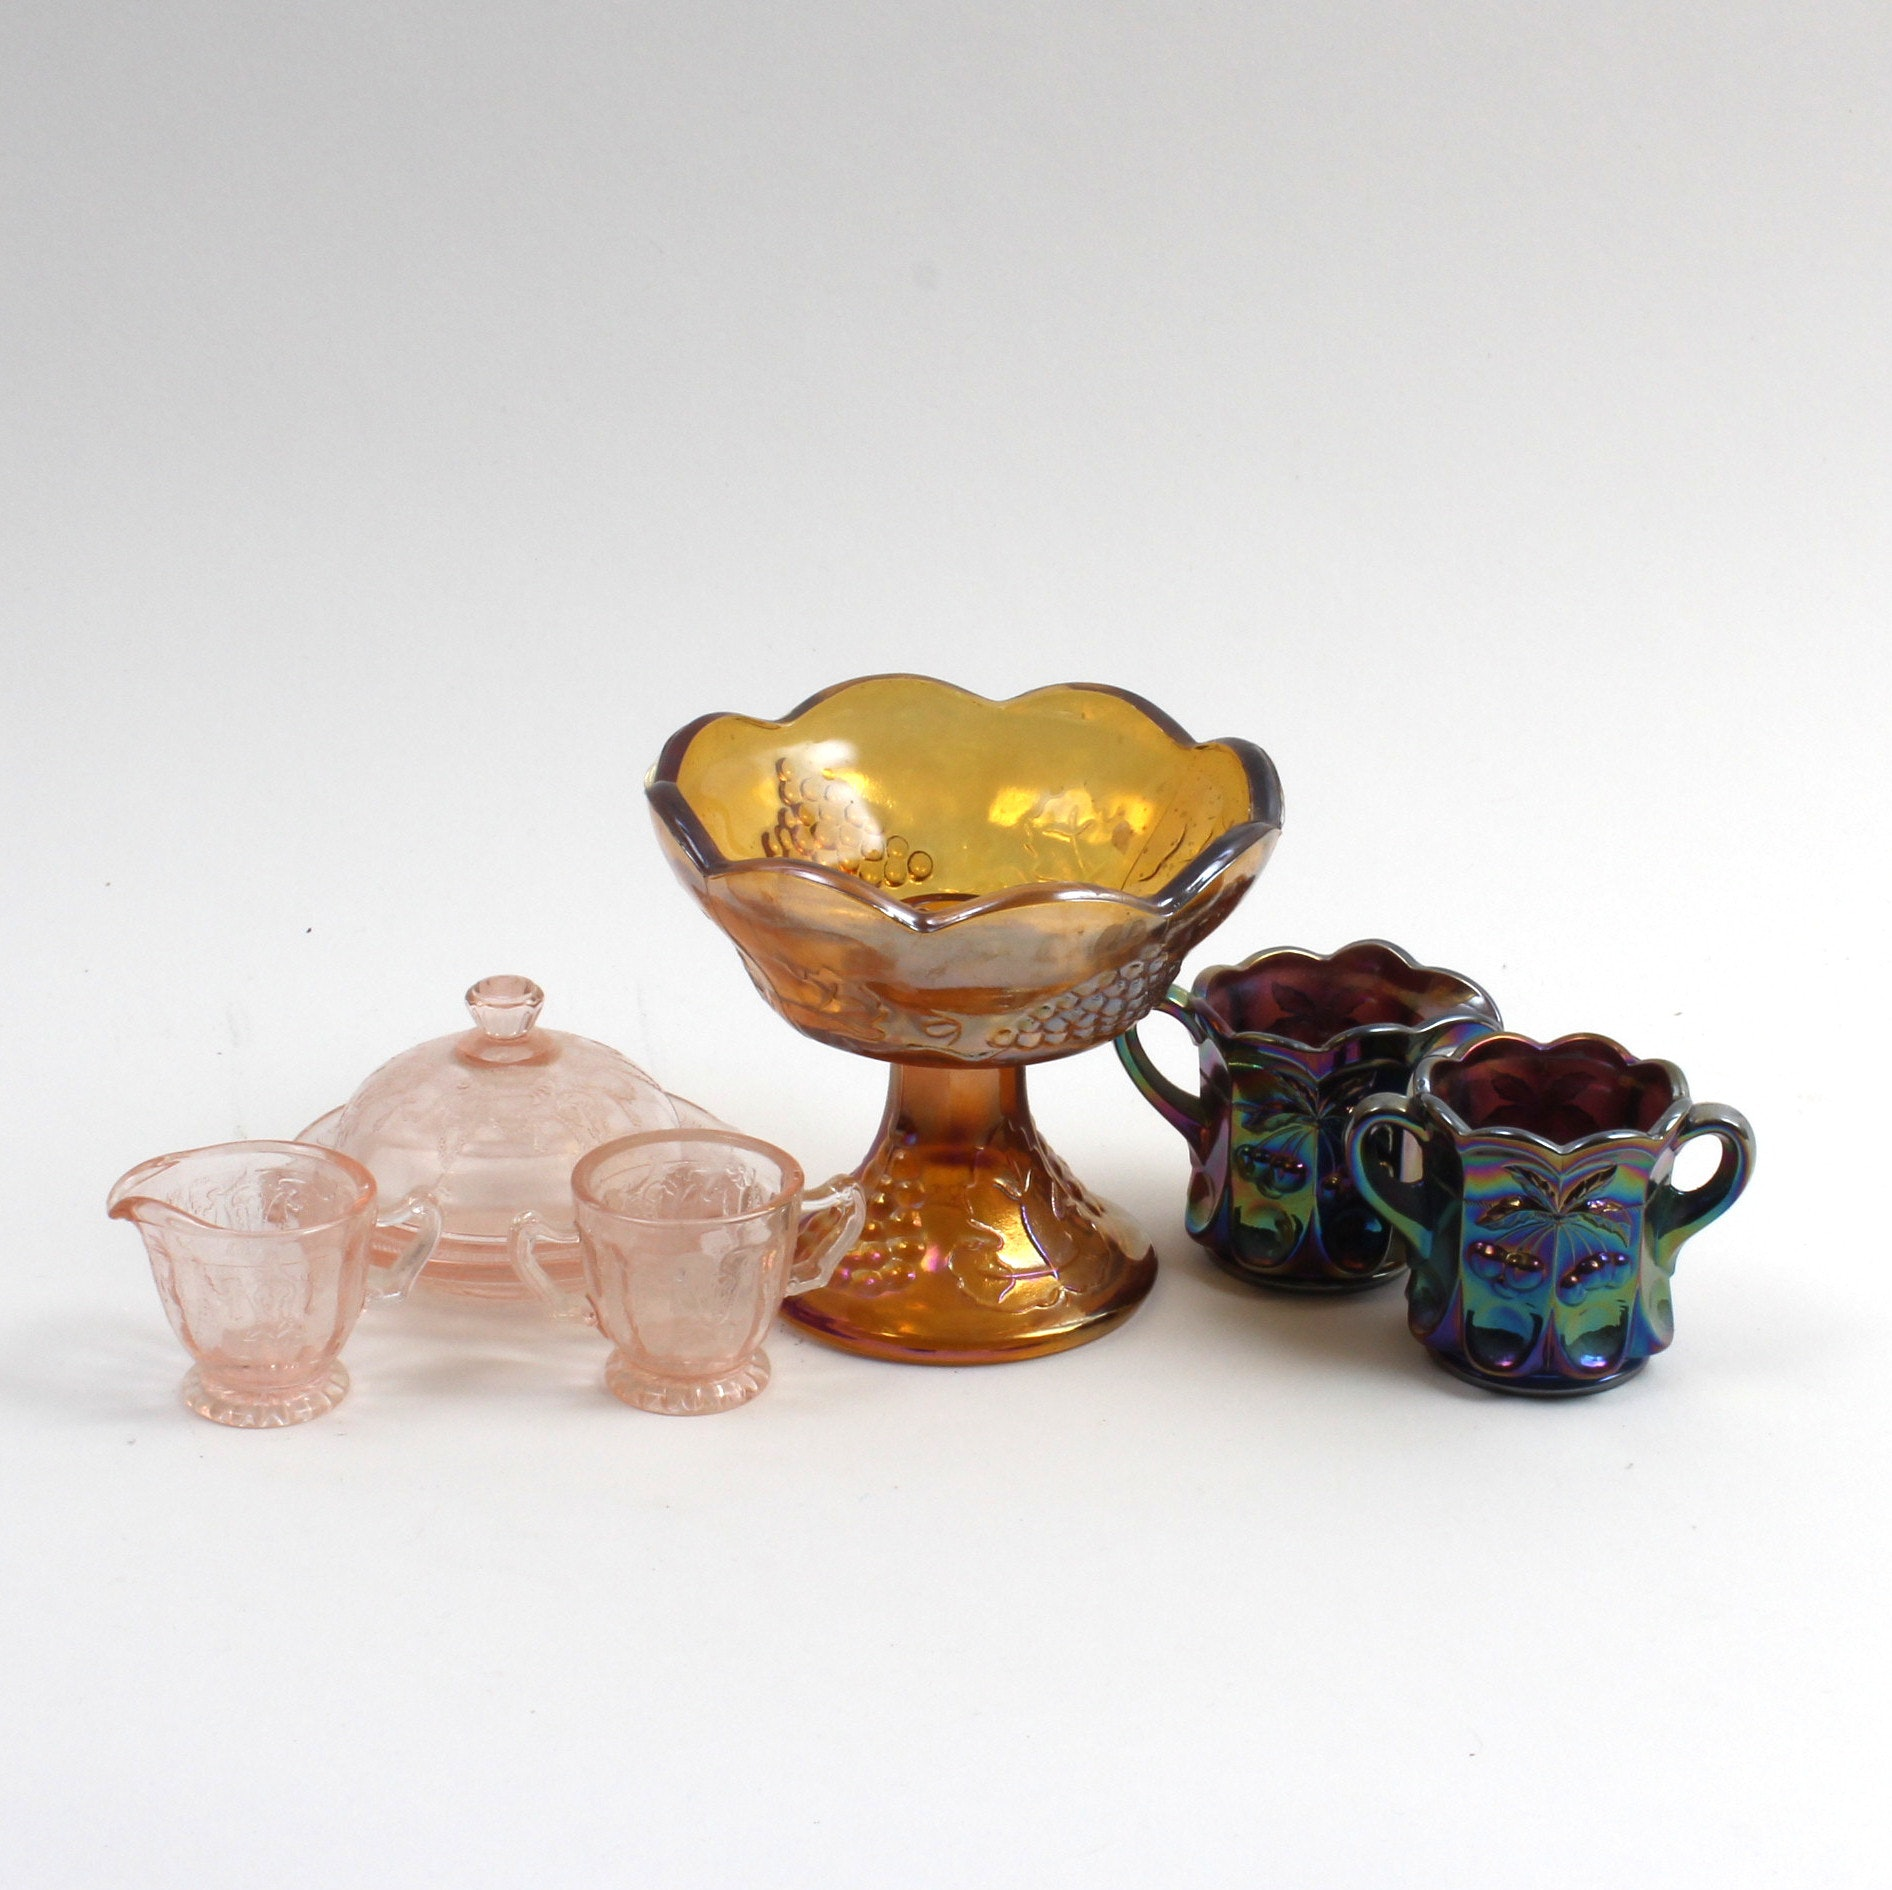 Carnival and Depression Glass